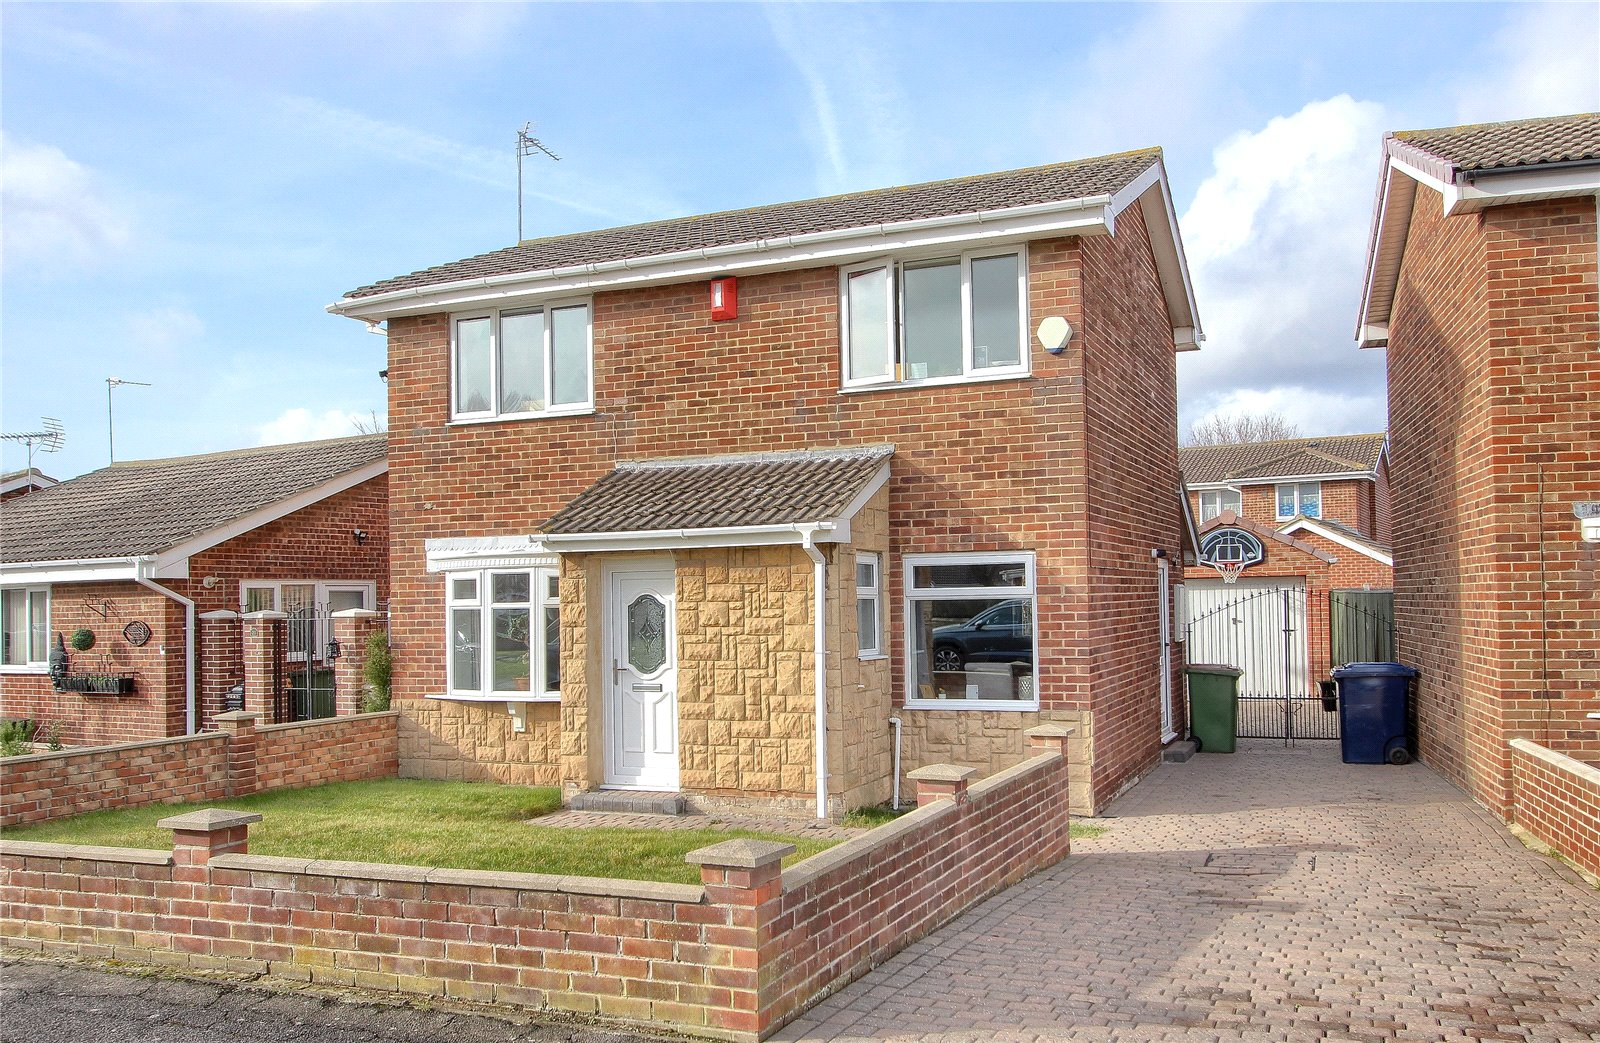 3 bed house for sale in Fulmerton Crescent, Redcar 1